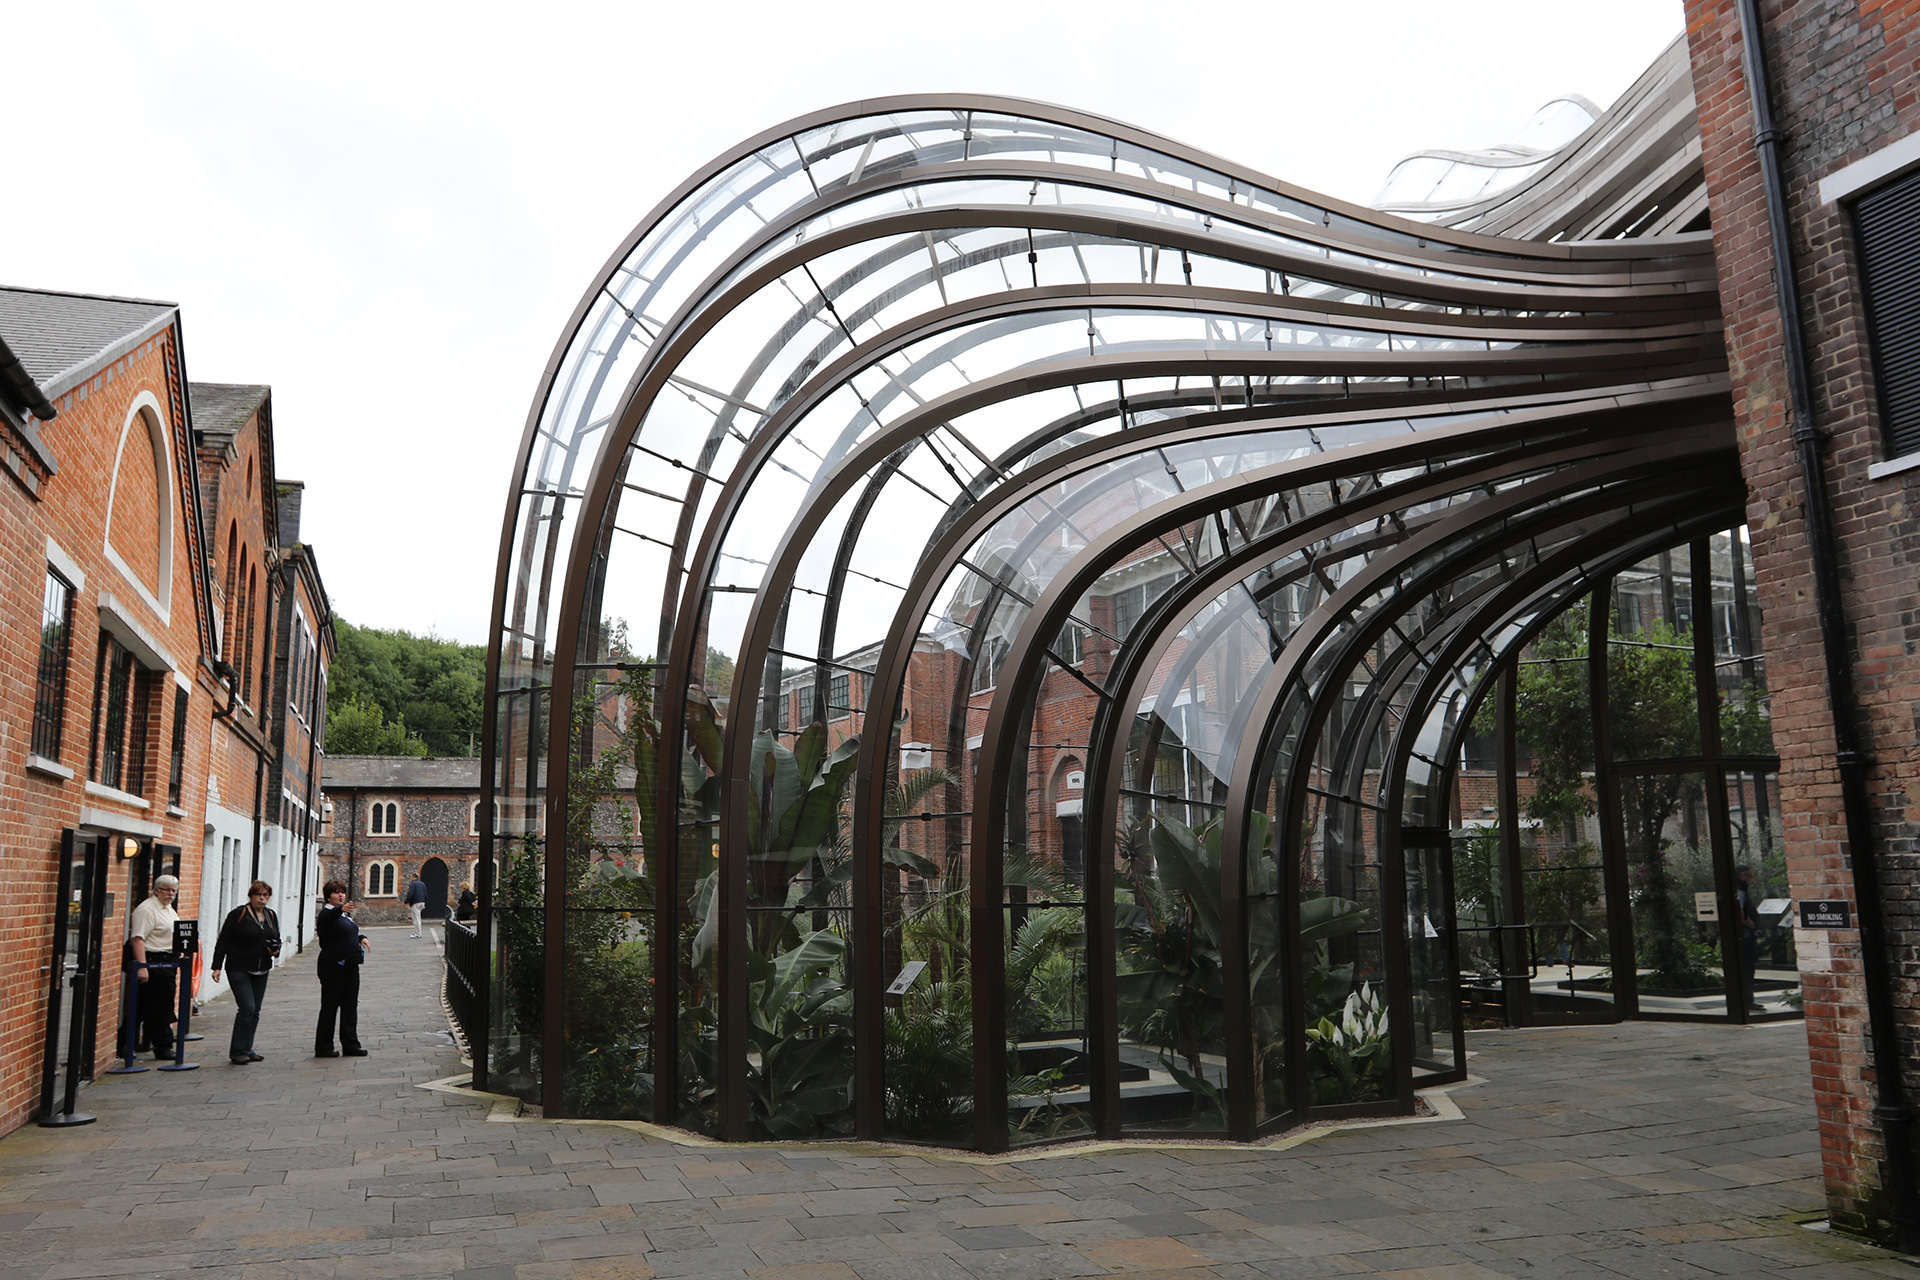 Bombay Sapphire distillery, Hampshire, UK, 2014 | Thomas Heatherwick | Heatherwick Studio | STIRworld